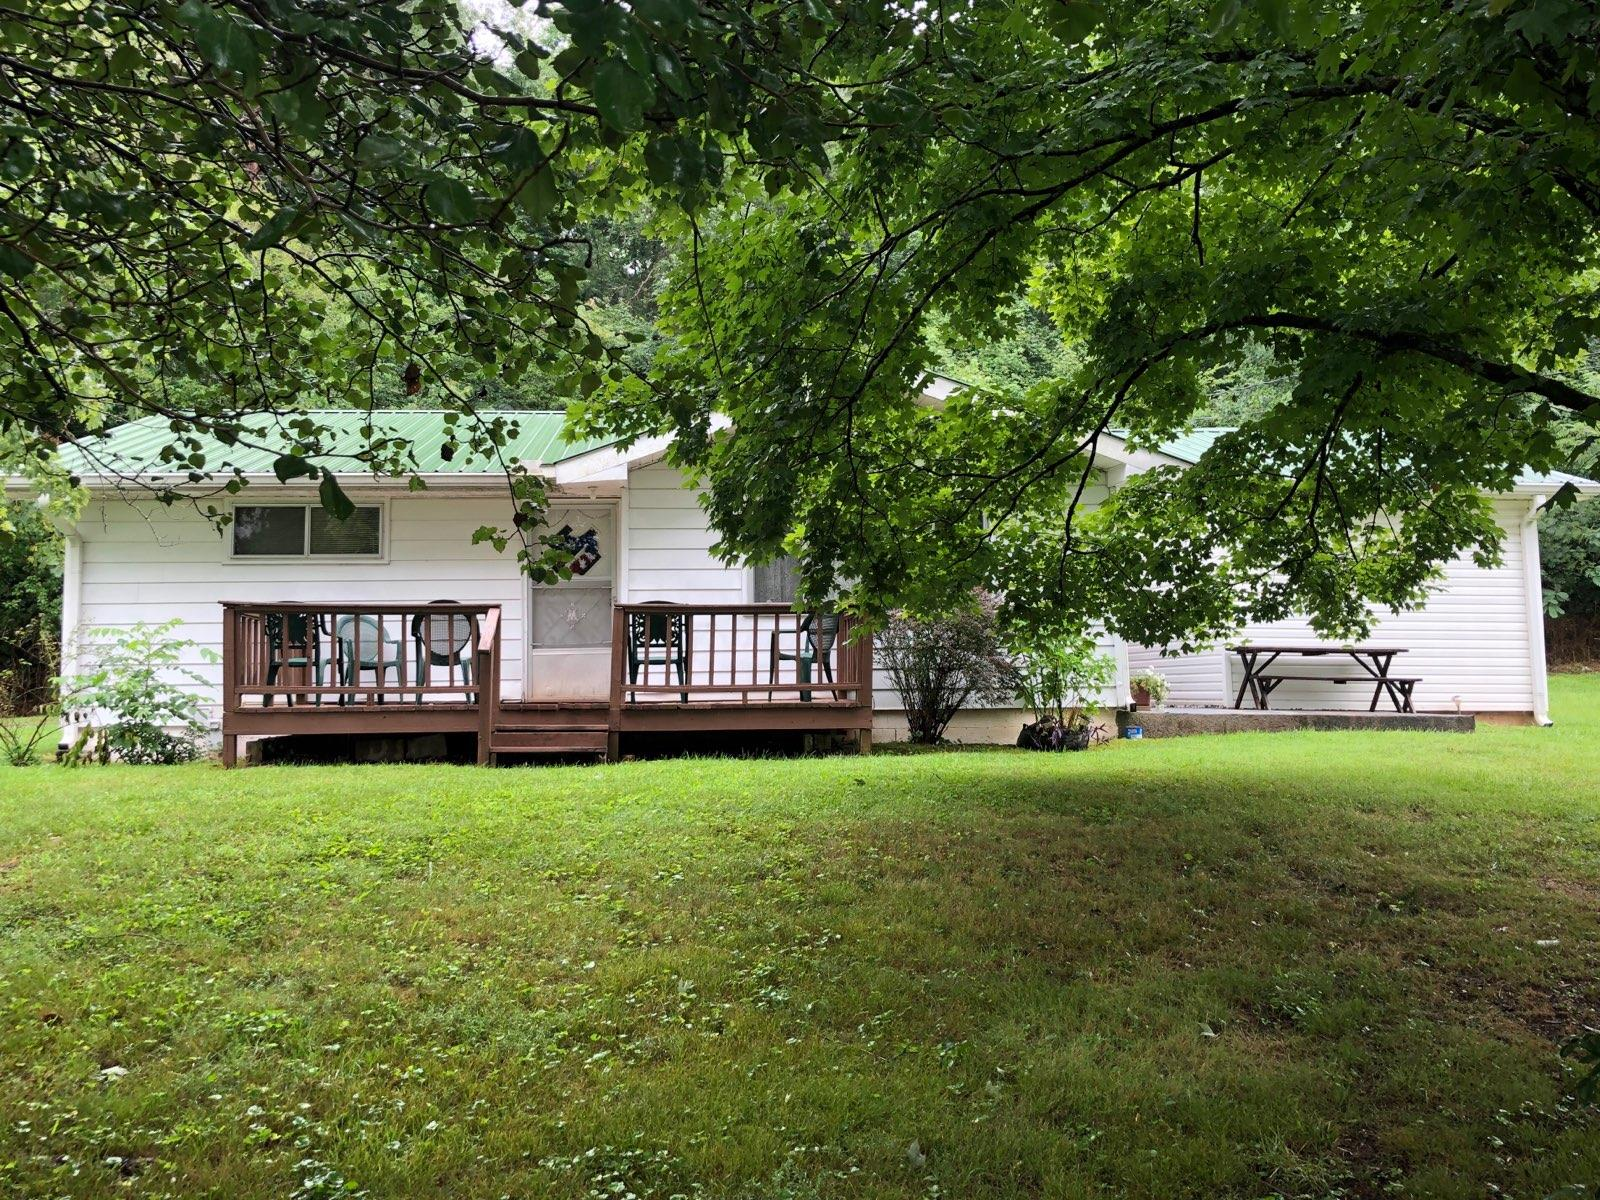 1494 Main St, Dunlap, TN 37327 - Dunlap, TN real estate listing